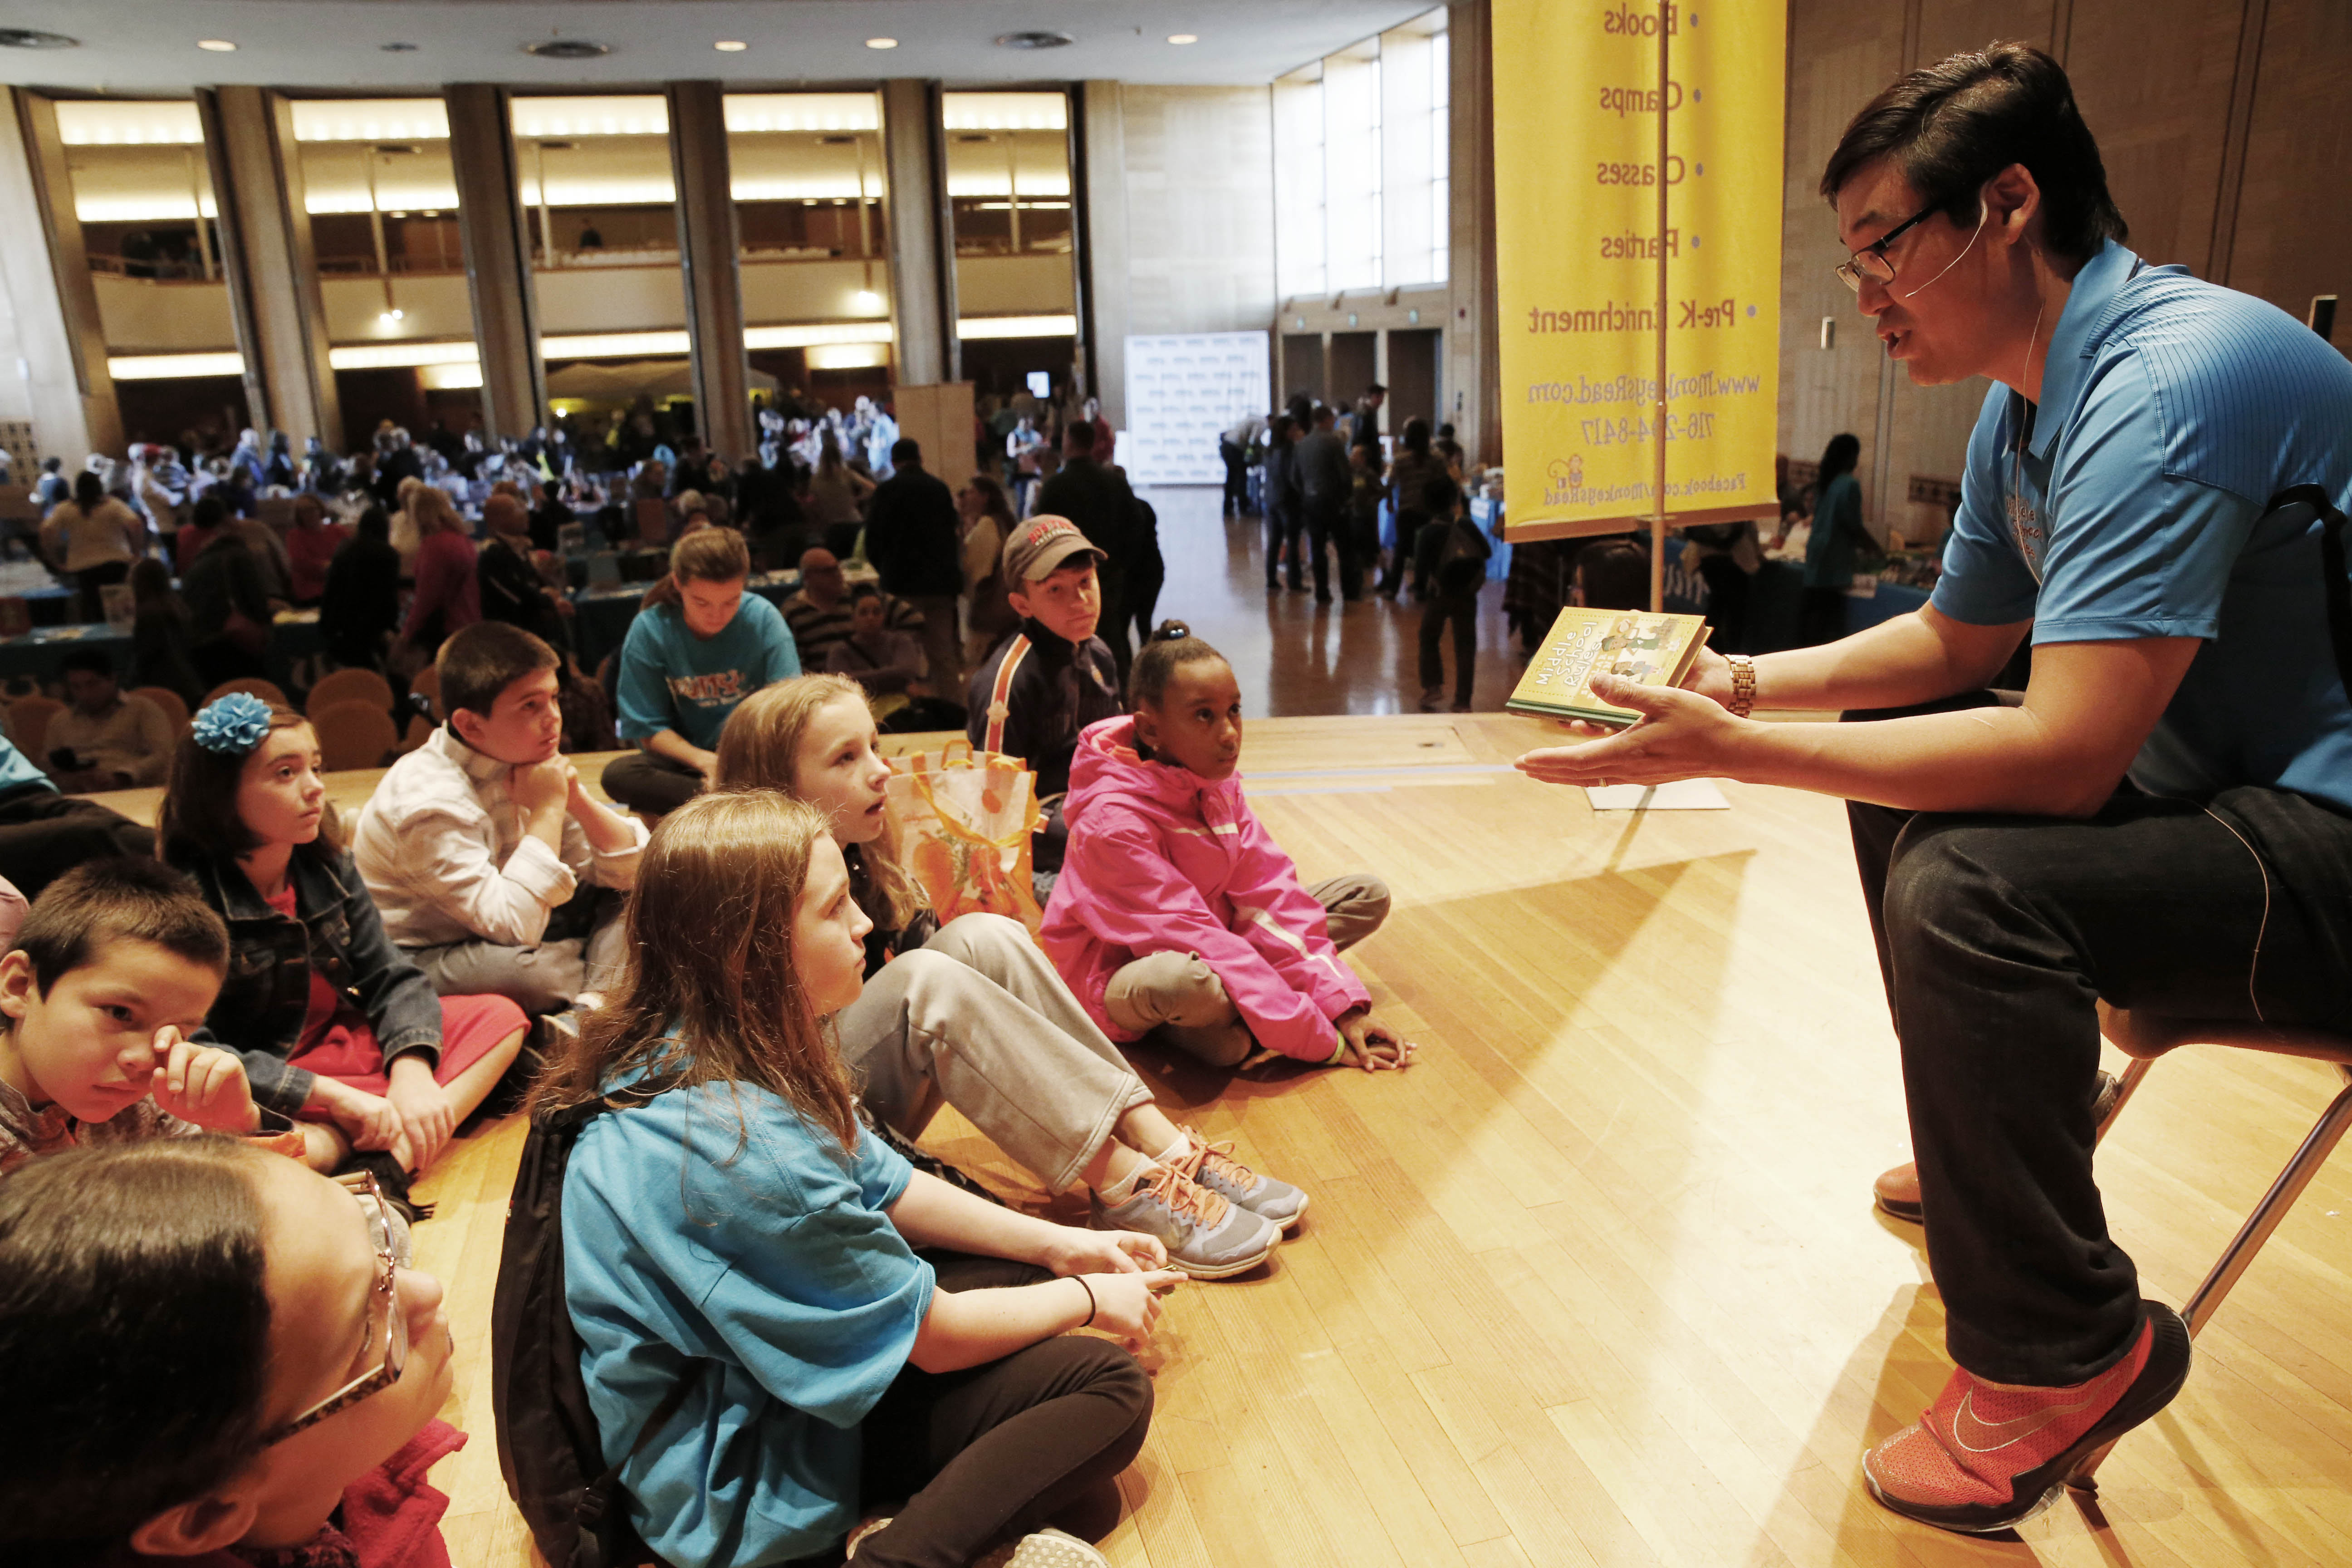 Author Sean Jensen takes questions from kids after reading from his book, 'The Middle School Rules of Skylar Diggins,' at the WNY Children's Book Expo  on Sunday.  (Derek Gee/Buffalo News)